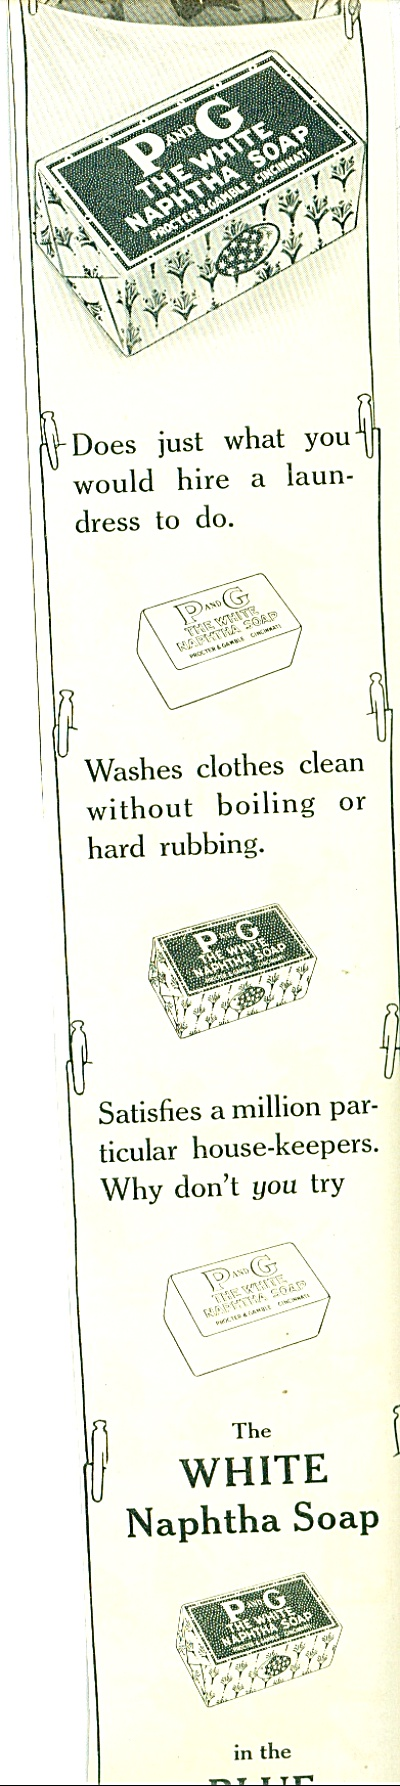 1914 P&G PROCTOR GAMPLE NAPHTHA SOAP AD (Image1)